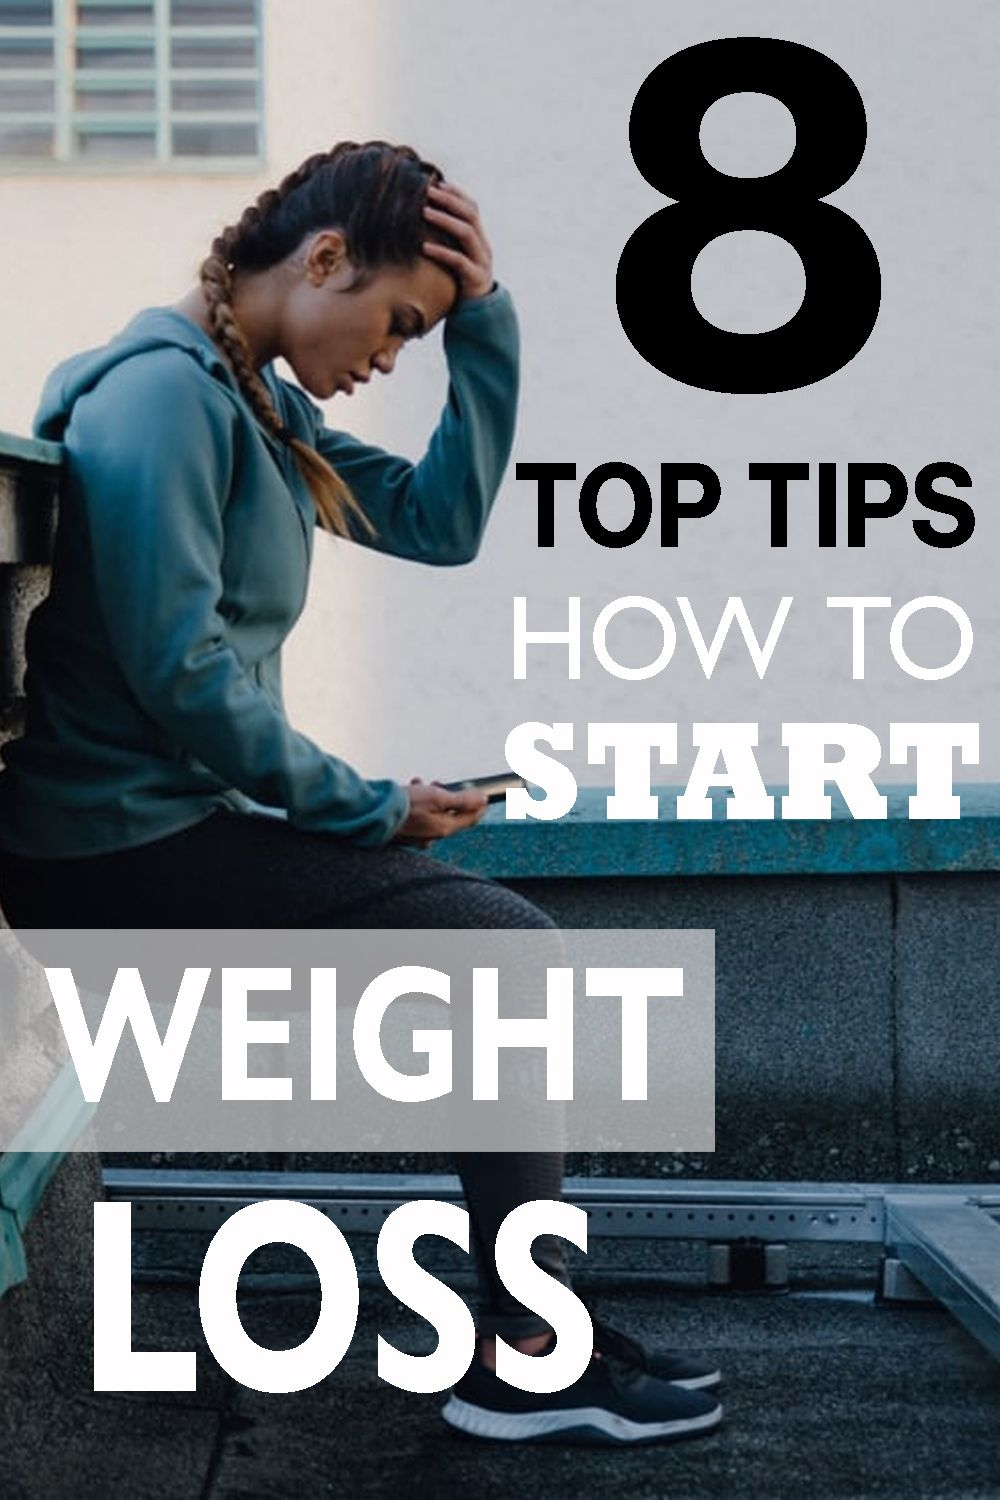 I want to lose weight how do i start